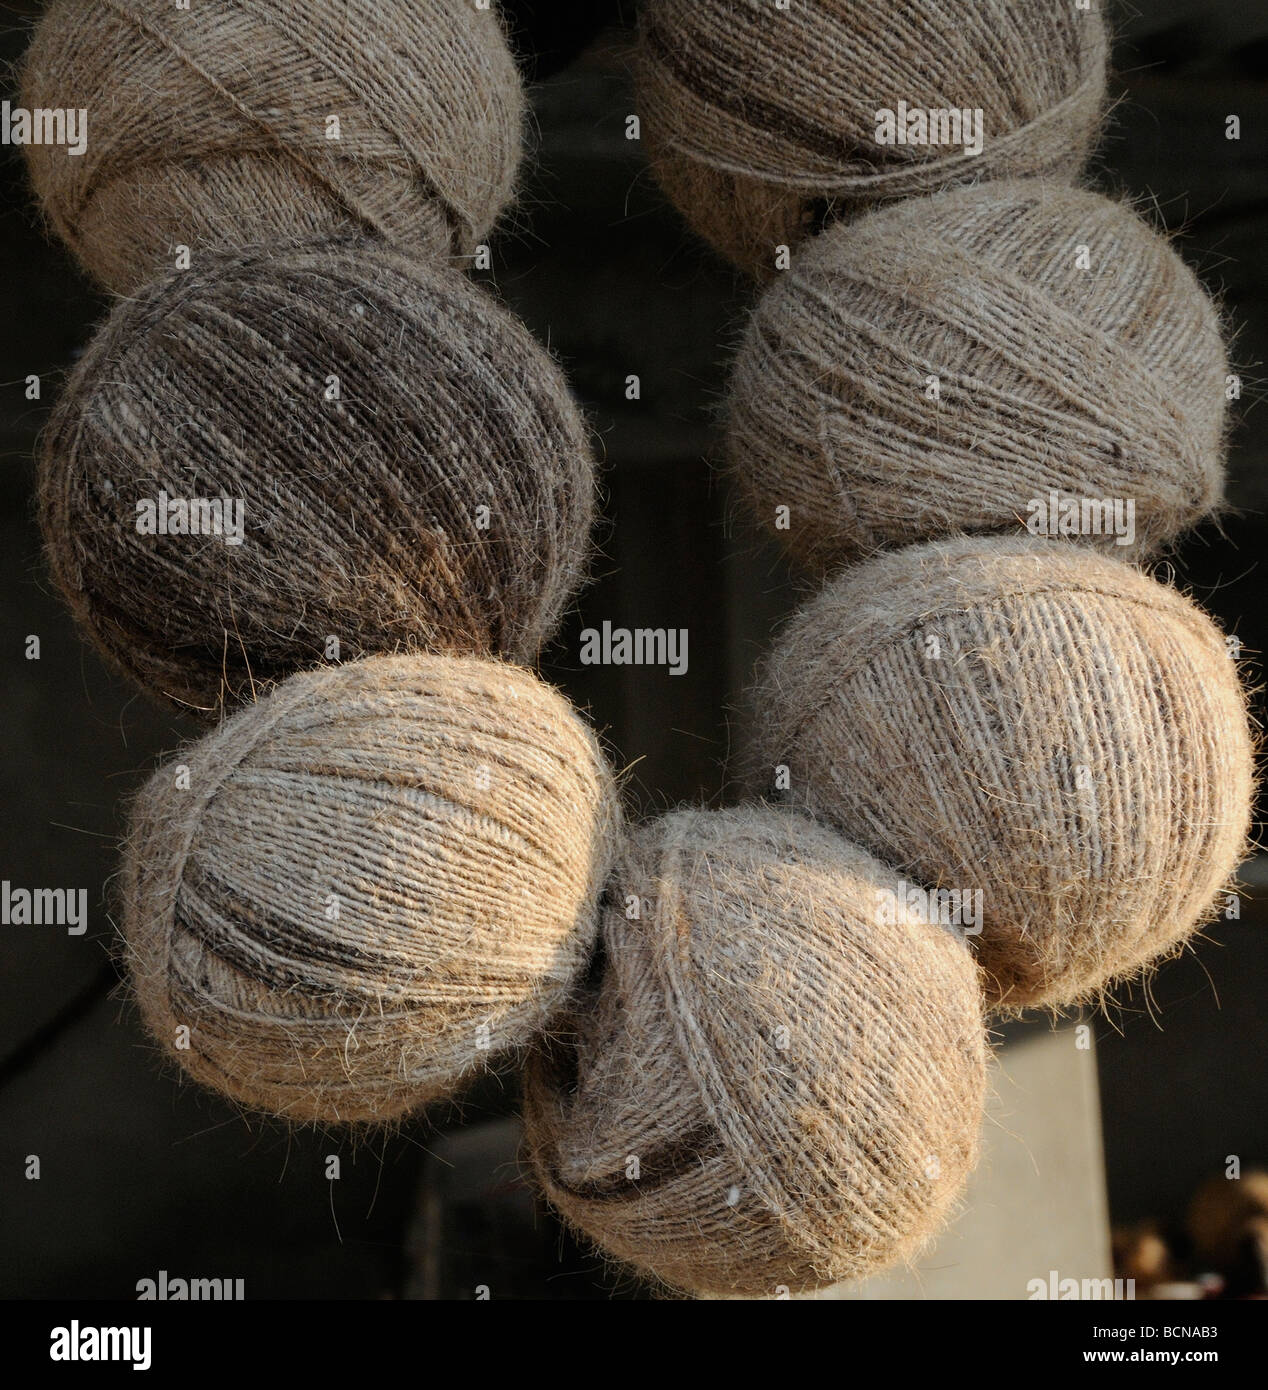 Balls of undyed naturally coloured wool hang in a village house. Nimaj, Rajasthan, Republic of India.Stock Photo